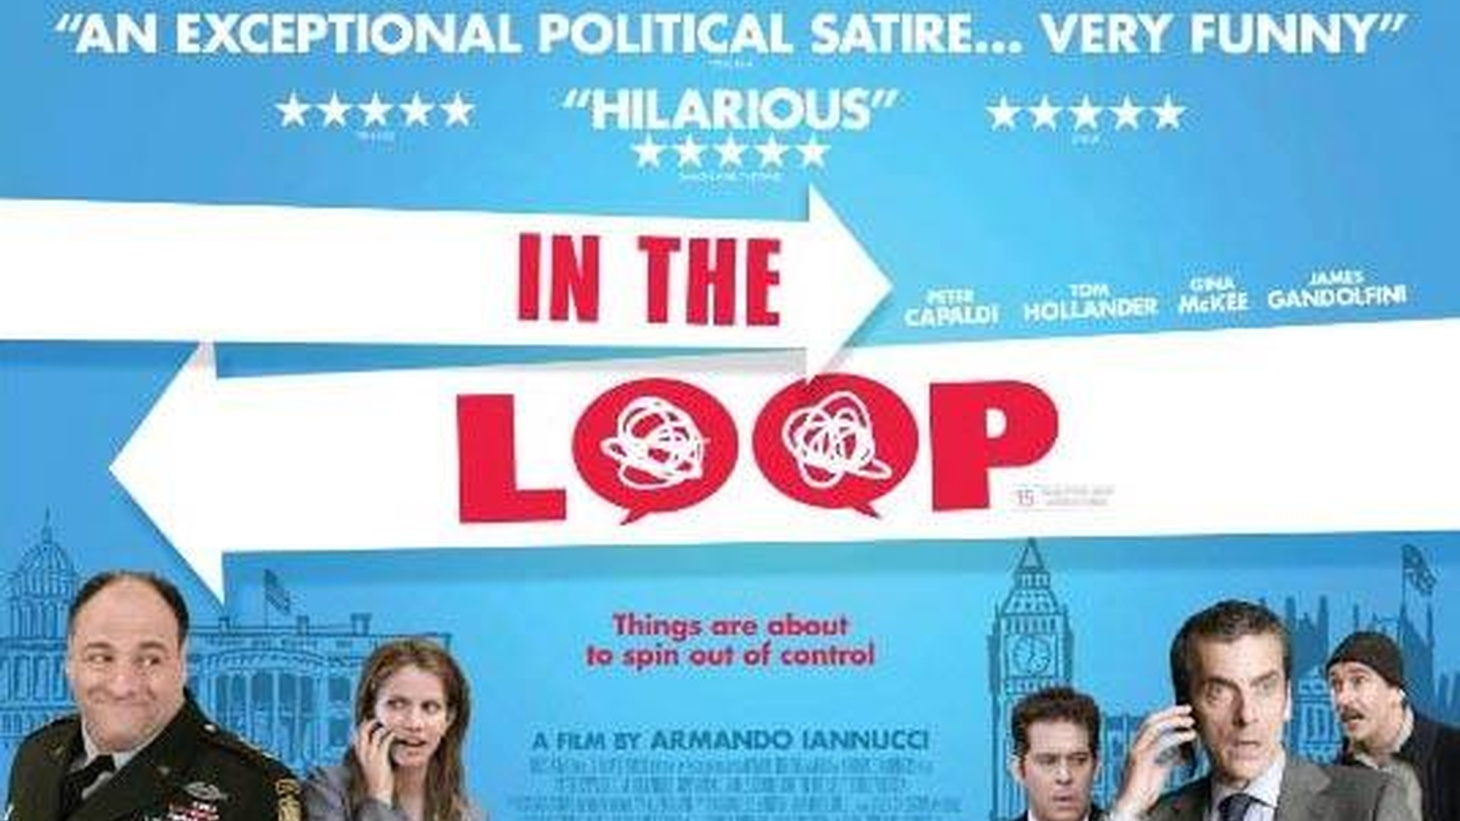 A war in the Middle East may break out. What's more important than saving lives? Saving face, as seen in director Armando Iannucci's briliant satire, In the Loop, which derives from his BBC series, The Thick of It.